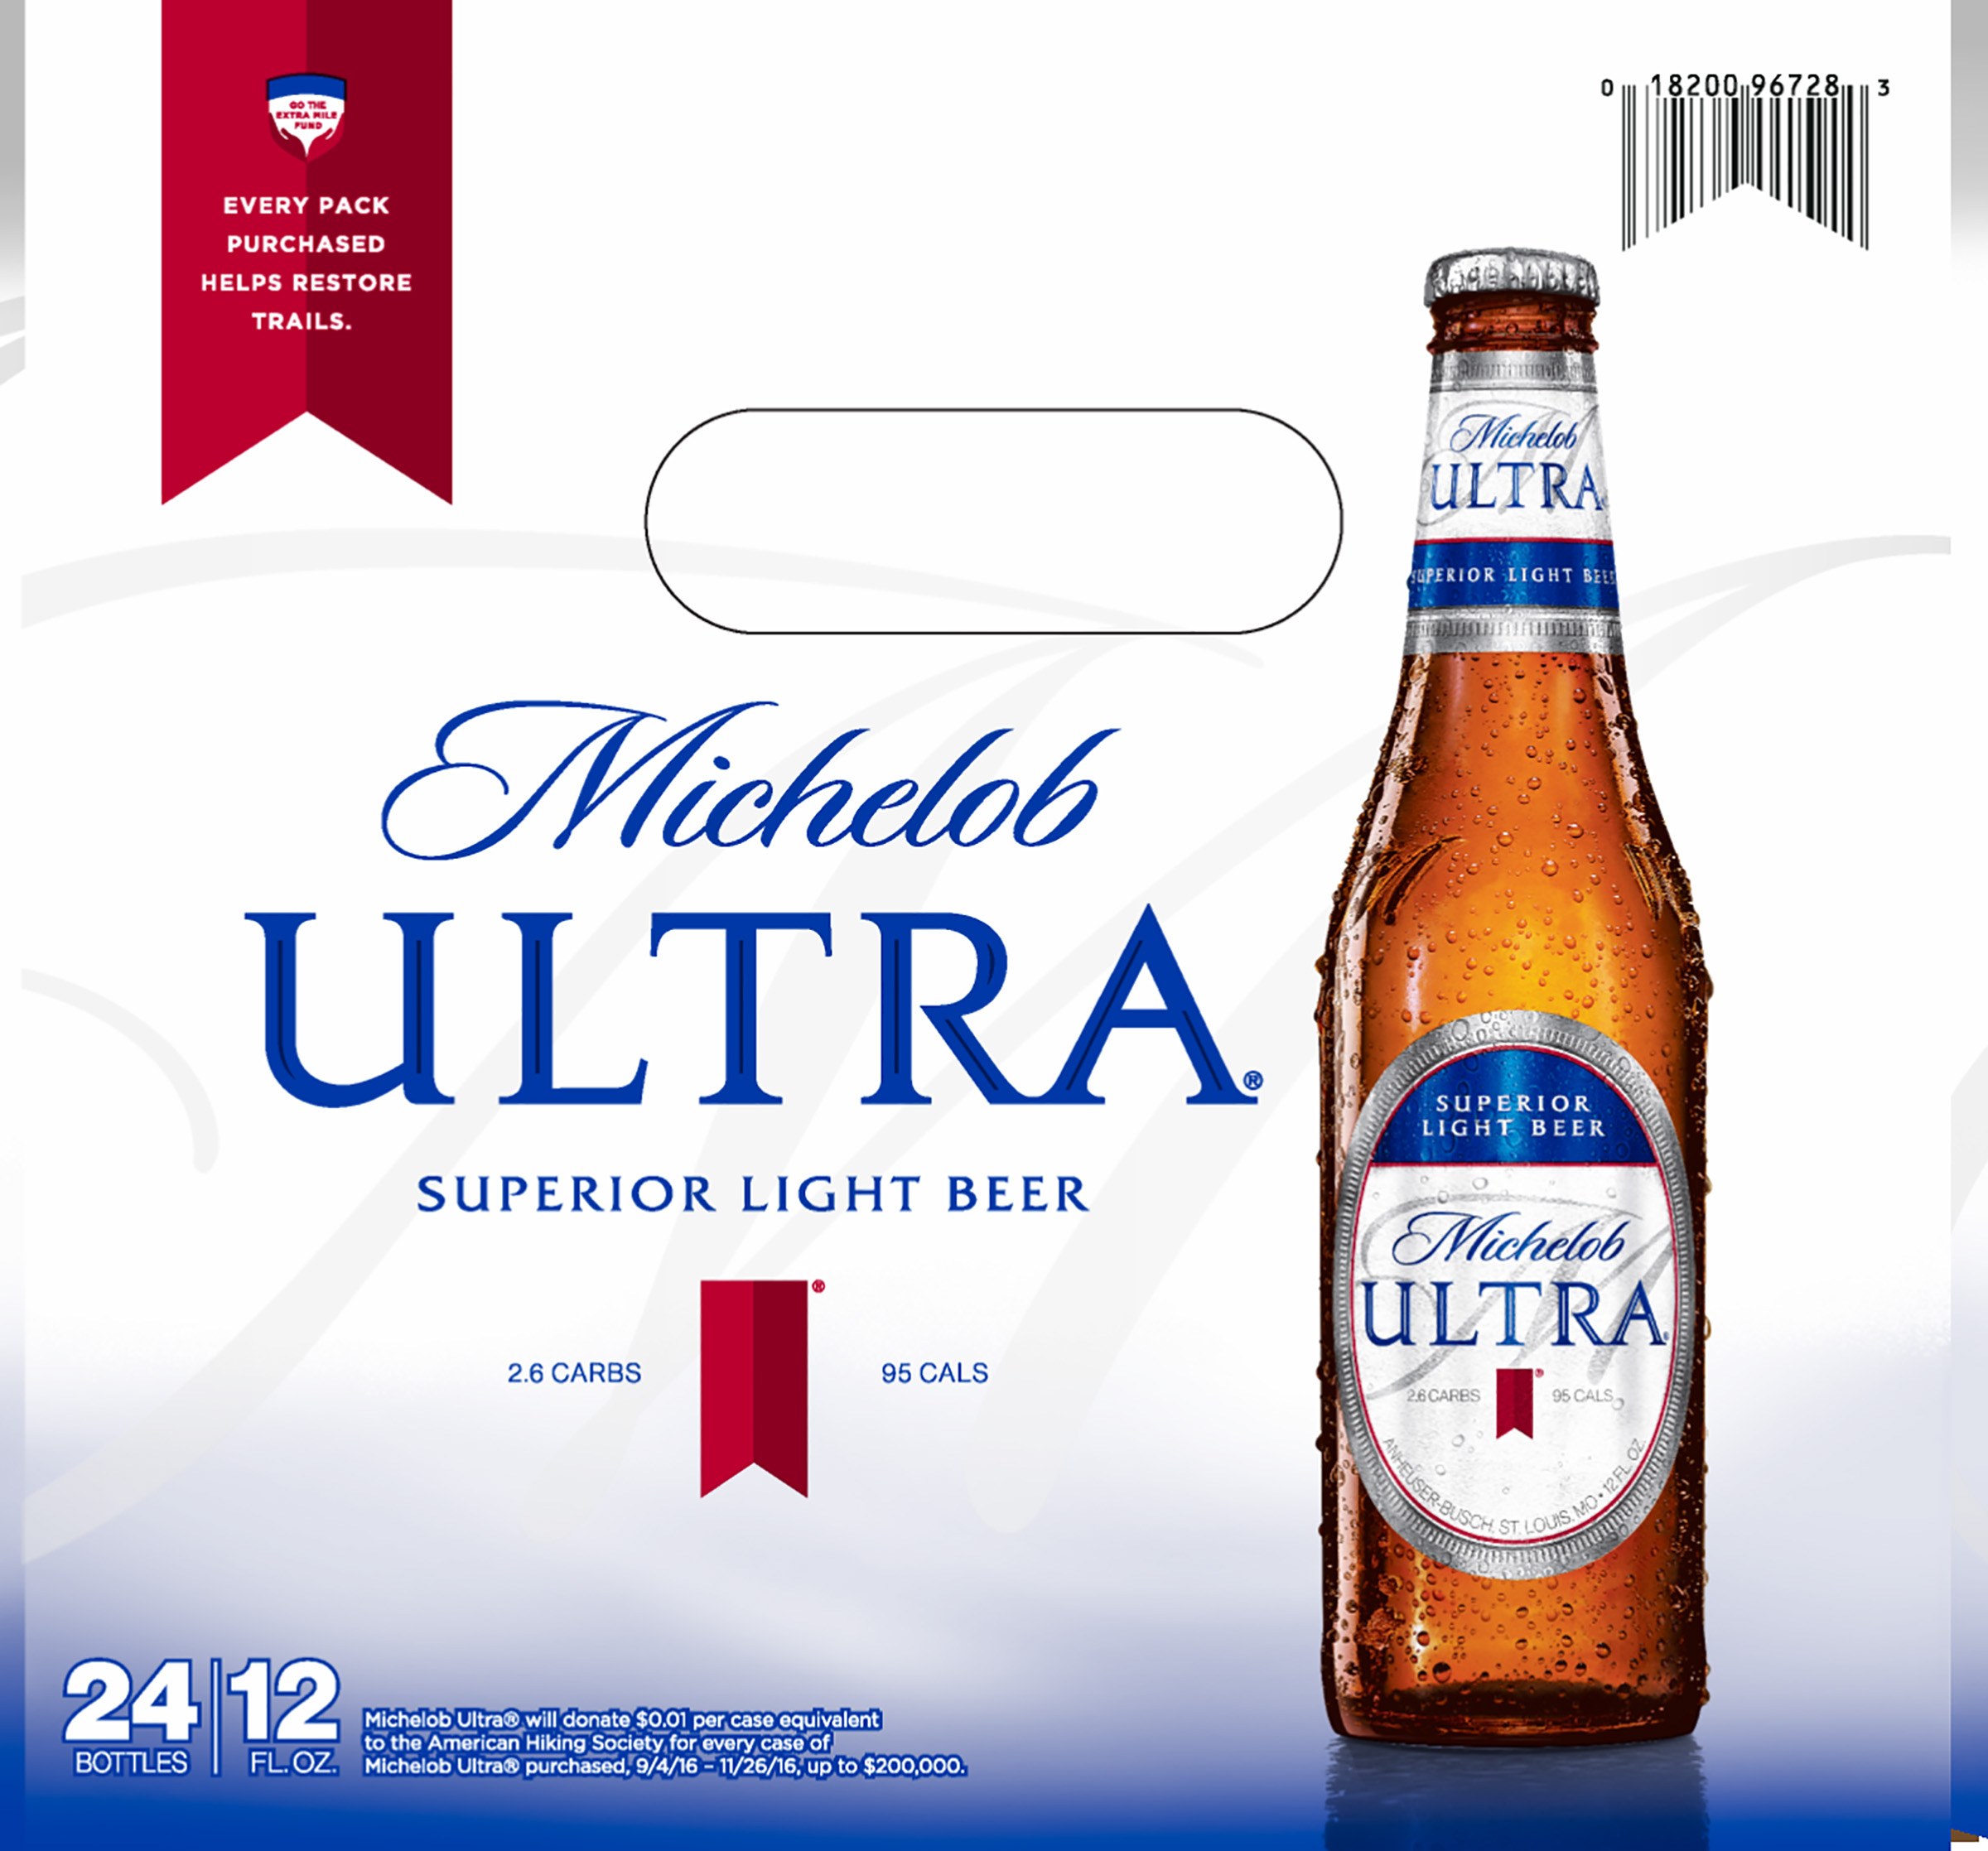 Michelob ultra logo black background